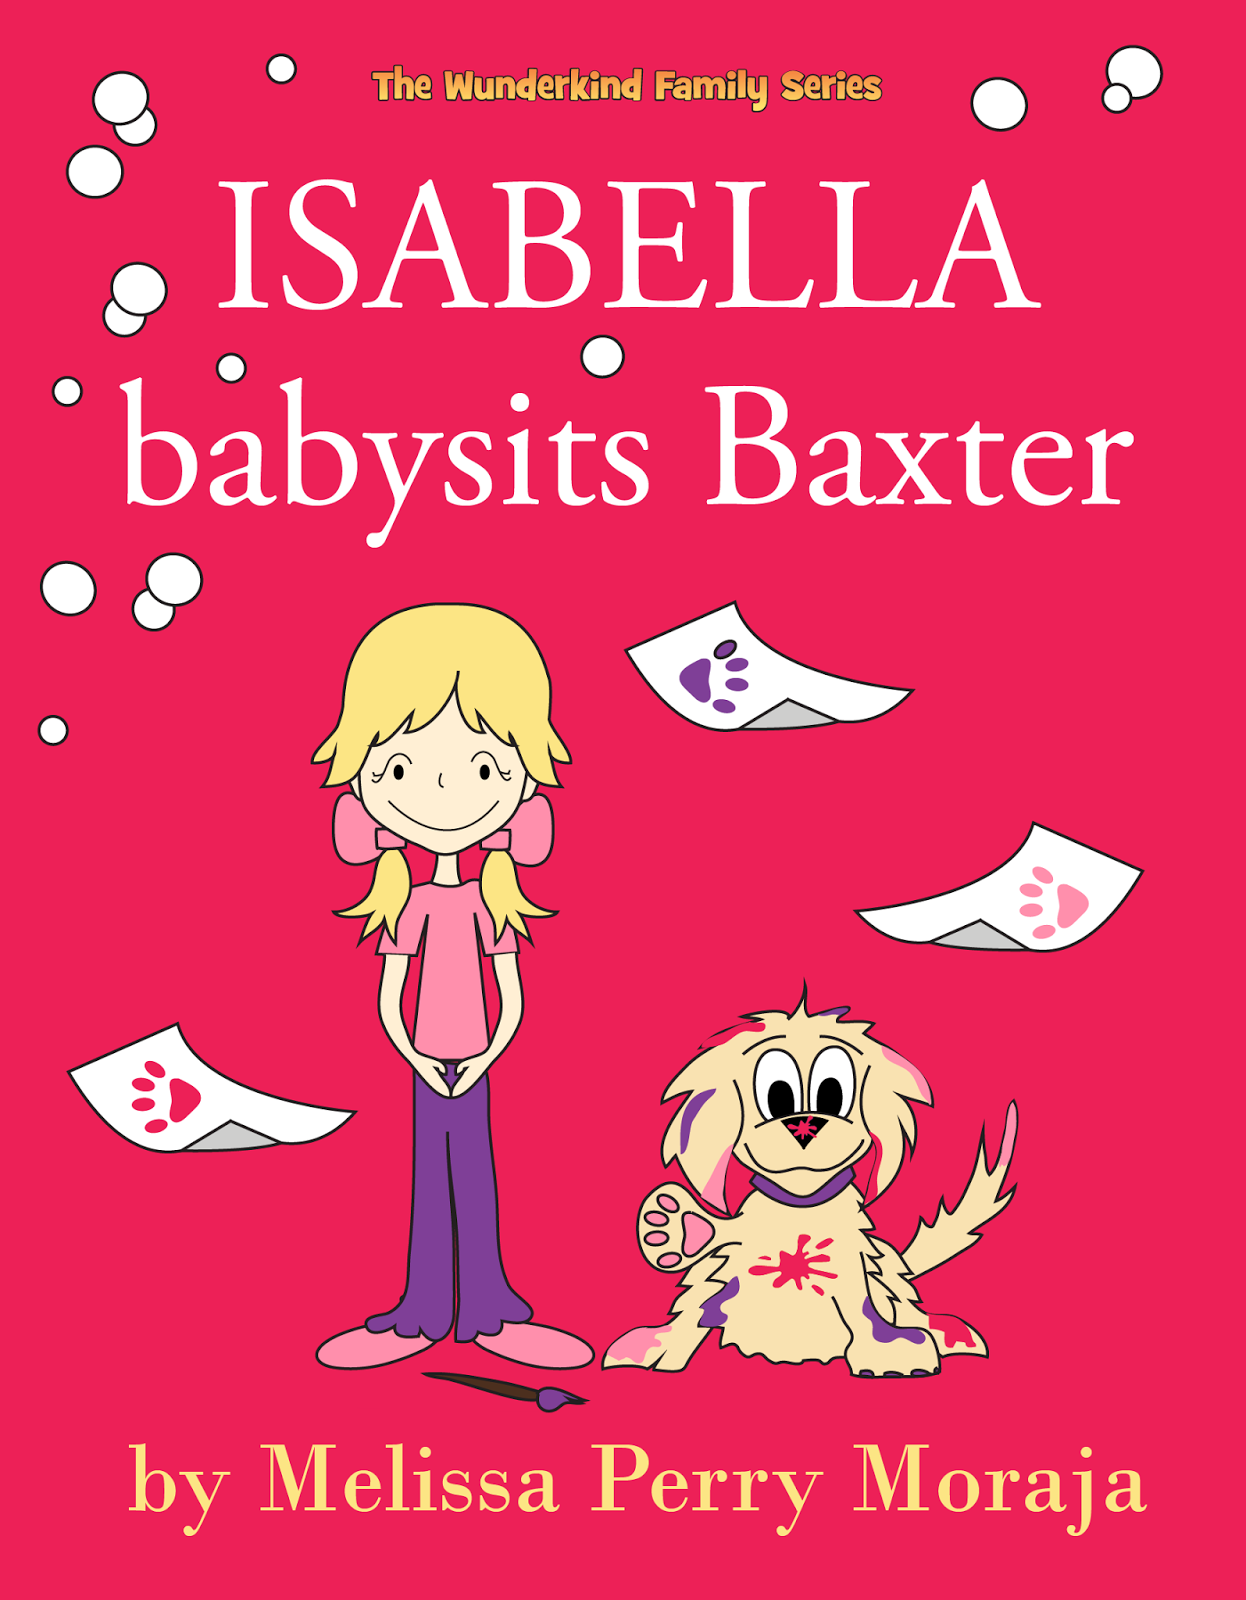 Isabella Babysits Baxter Children's Picture Book